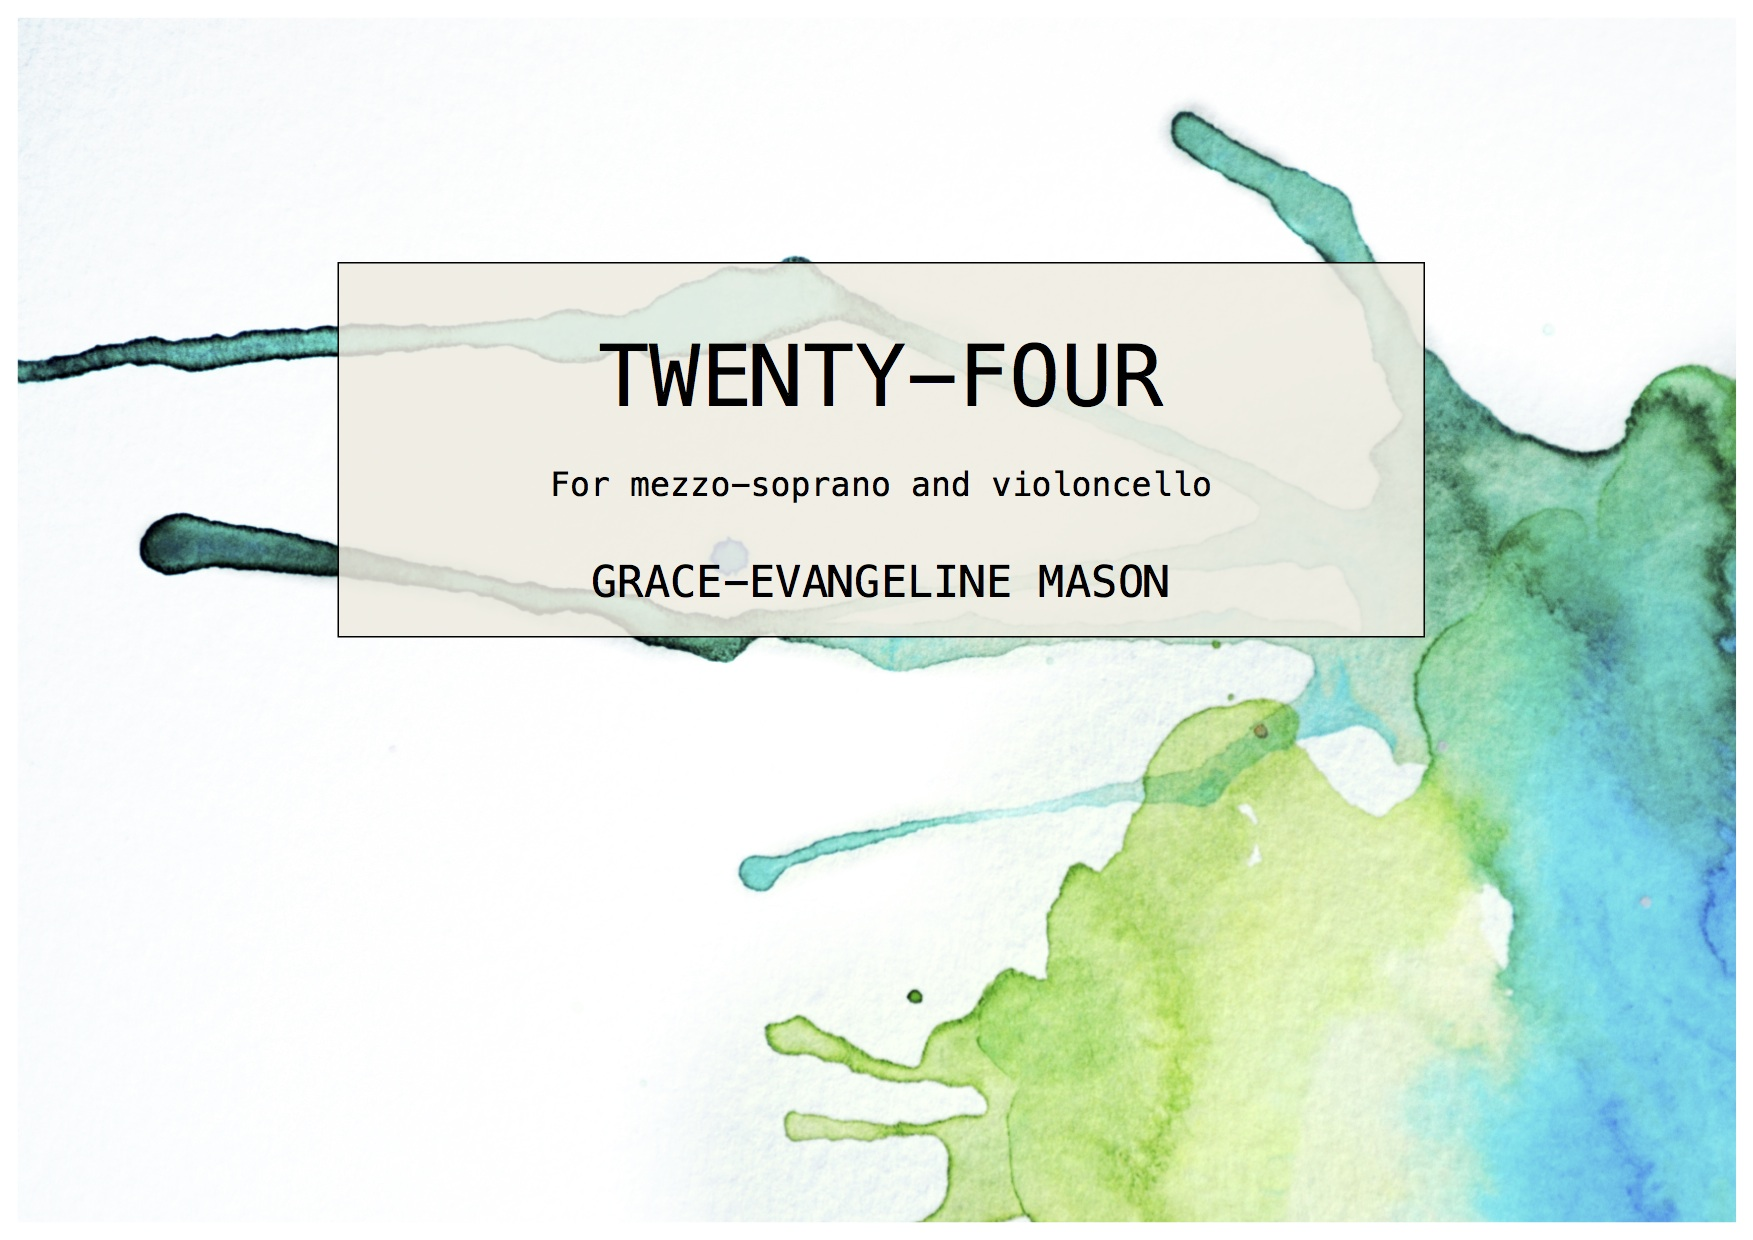 'Twenty-Four' (2015) - for mezzo-soprano and 'celloDuration: Open (up to 13')First performed by members of Trio Atem at the New Music North West Festival (24/01/06)'Based upon the poem 'twenty-Four Hokku on a modern theme' by Amy Lowell, 'Twenty-Four' is made up of 24 separate movements of varying length and are created on impulse as a reaction to each haiku. They are all a representation of different aspects of the human condition, except for the last, which is a reflective movement to signify nostalgia.The performance can last up to approximately 13 minutes in duration. However, the performers may choose to play a select number of movements in any order as they so wish and therefore, the length of the piece can vary significantly. Additionally, the amount of time between movements should be kept to a minimum.' ©G.E.M.2016©Cover Image: 'Twenty-Four' Painting by Grace-Evangeline Mason 2015